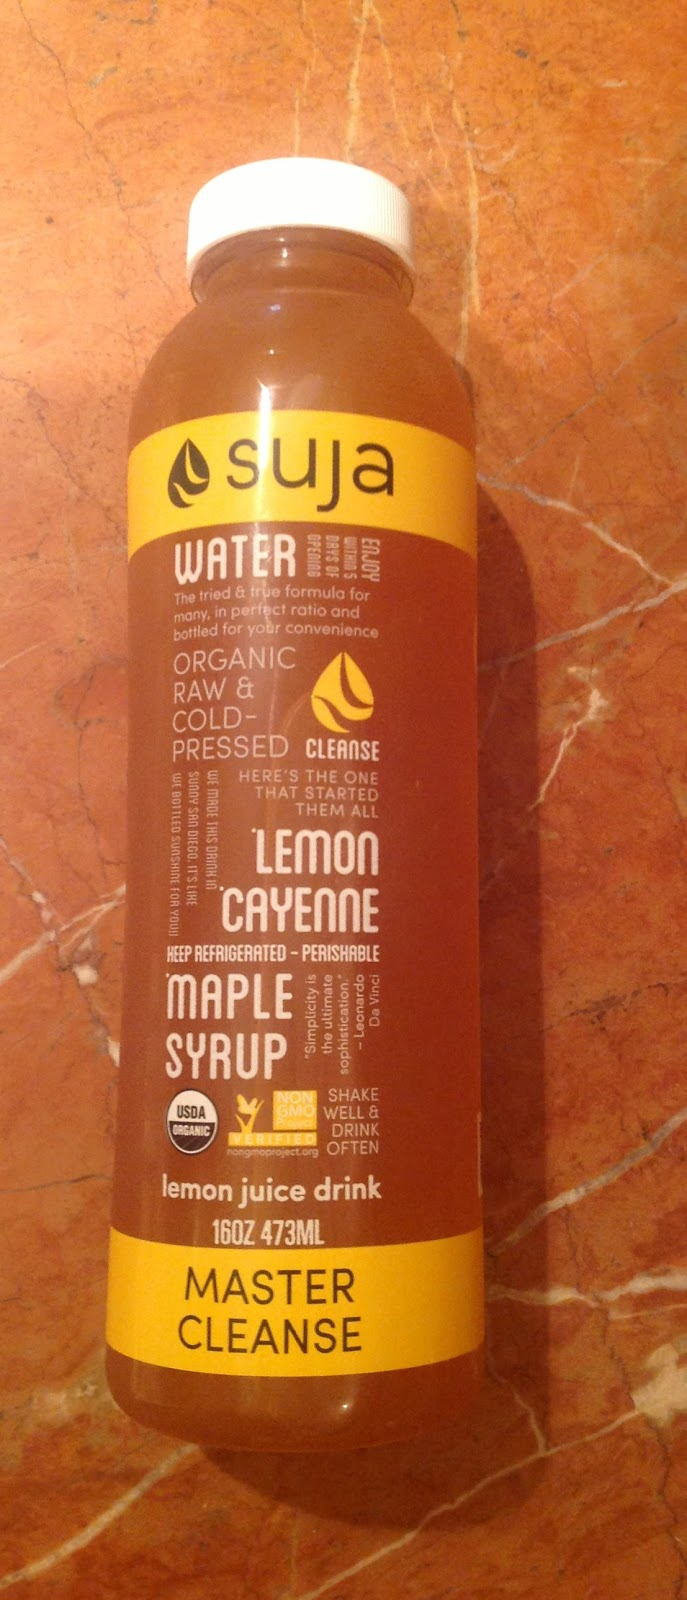 Suja master cleanse juice finally a way to drink the master suja juice master cleanse juice malvernweather Image collections